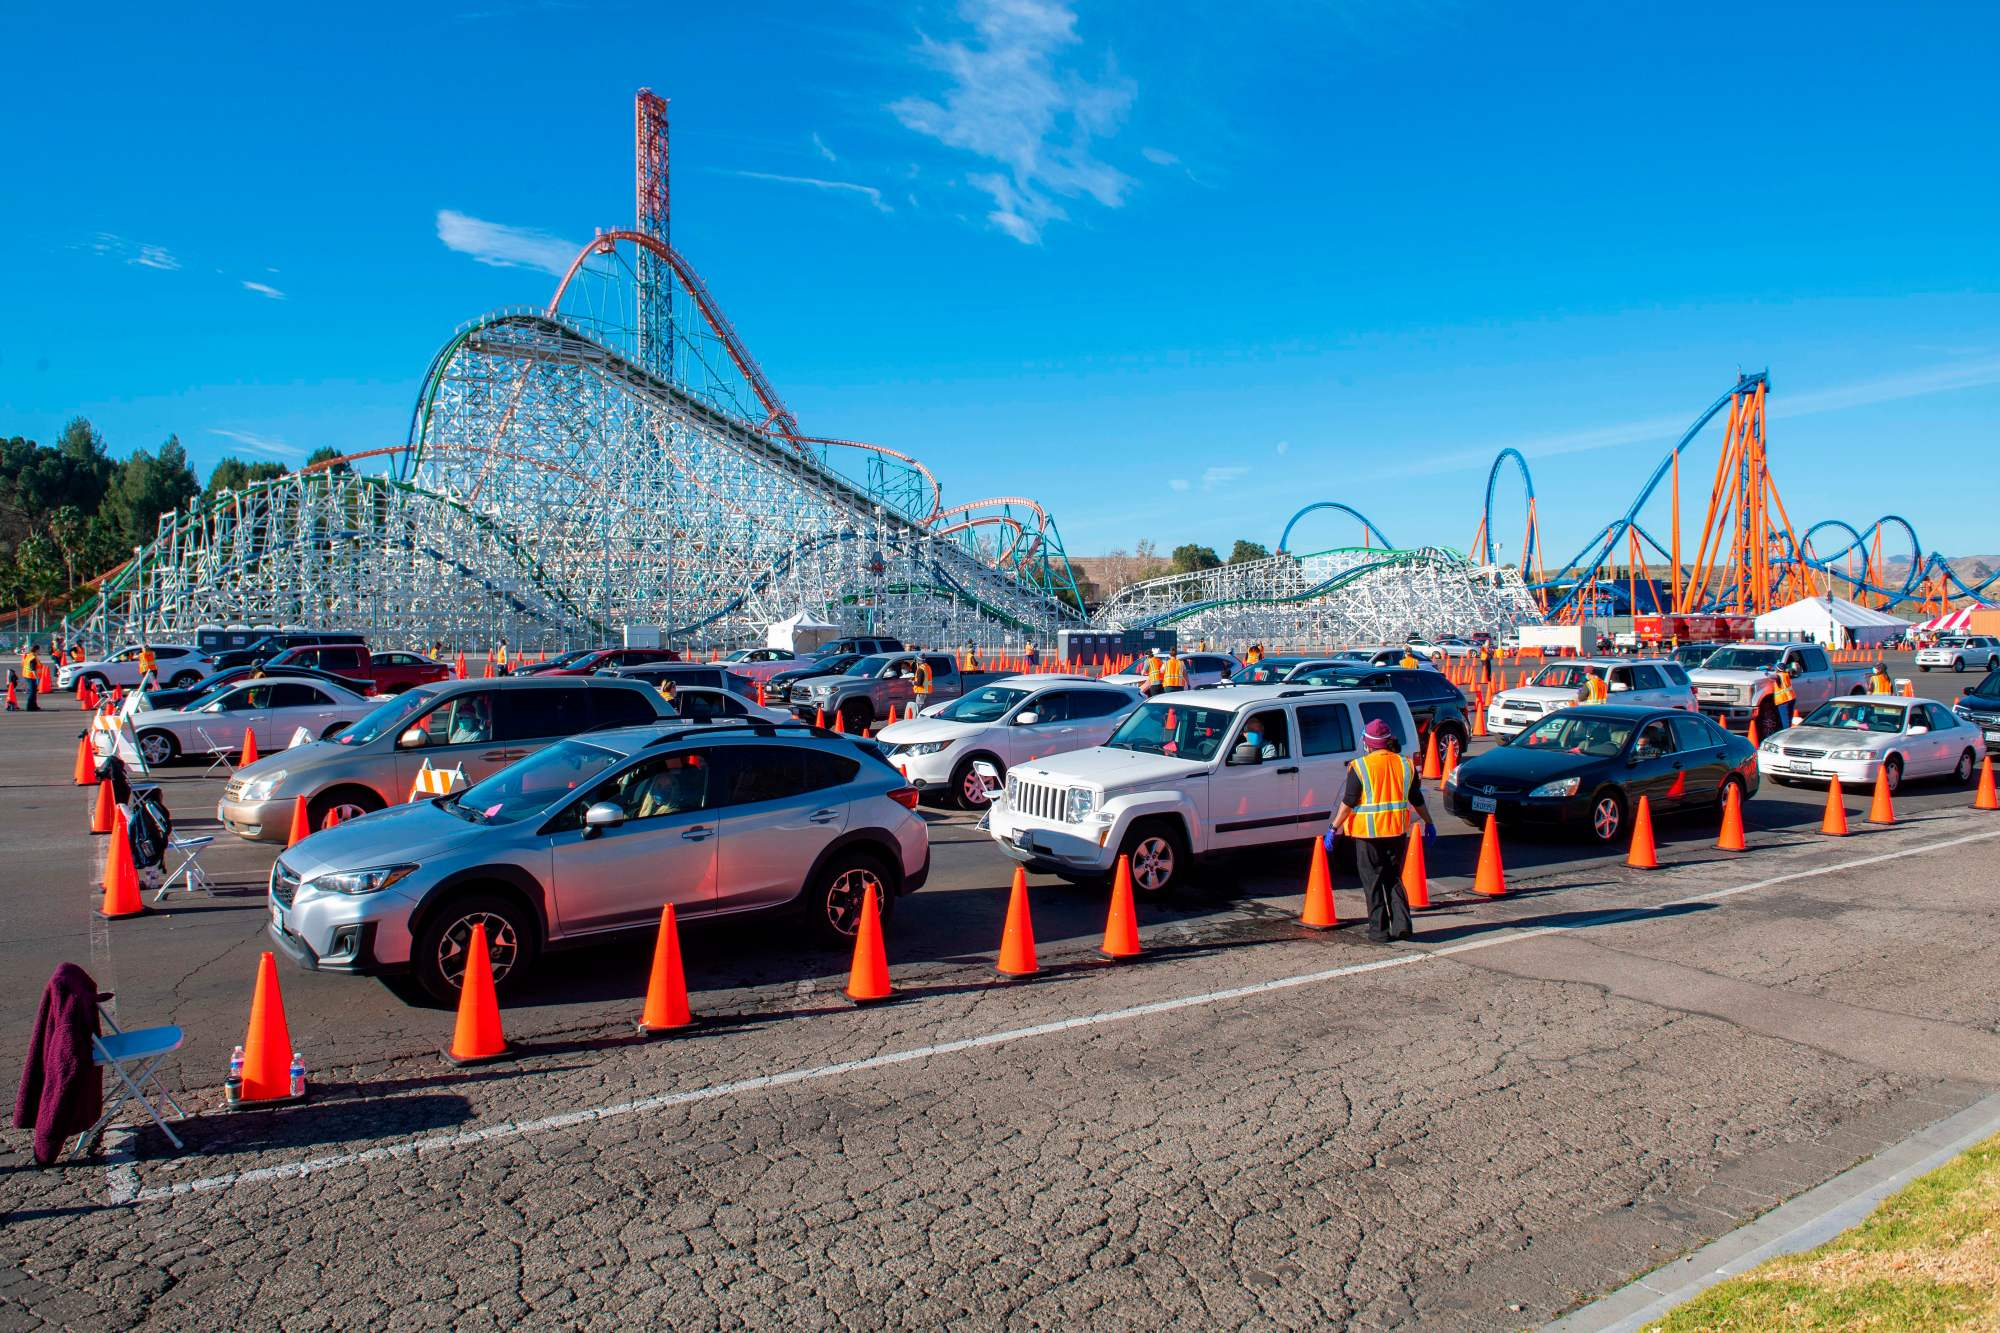 People sit in their cars in an observation area where they are checked for possible side effects after getting their vaccine shot at the large scale COVID-19 vaccination center set up at Six Flags Magic Mountain on Feb. 2, 2021 in Valencia. (VALERIE MACON/AFP via Getty Images)